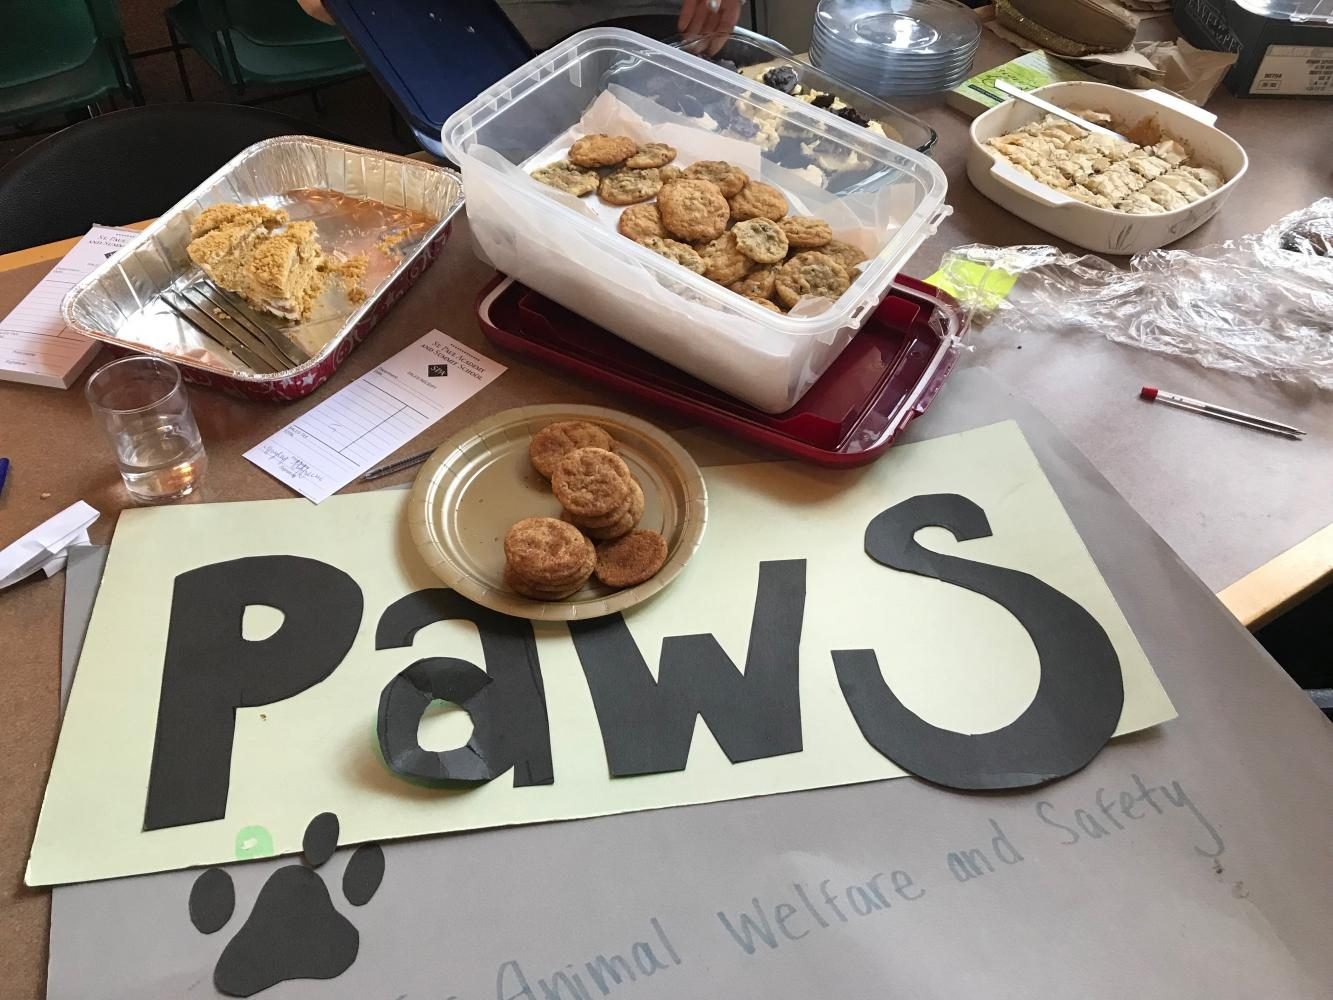 Part+of+the+proceeds+from+the+PAWS+bake+sale+will+be+going+to+World+Wildlife+Fund+%28WWF%29.+